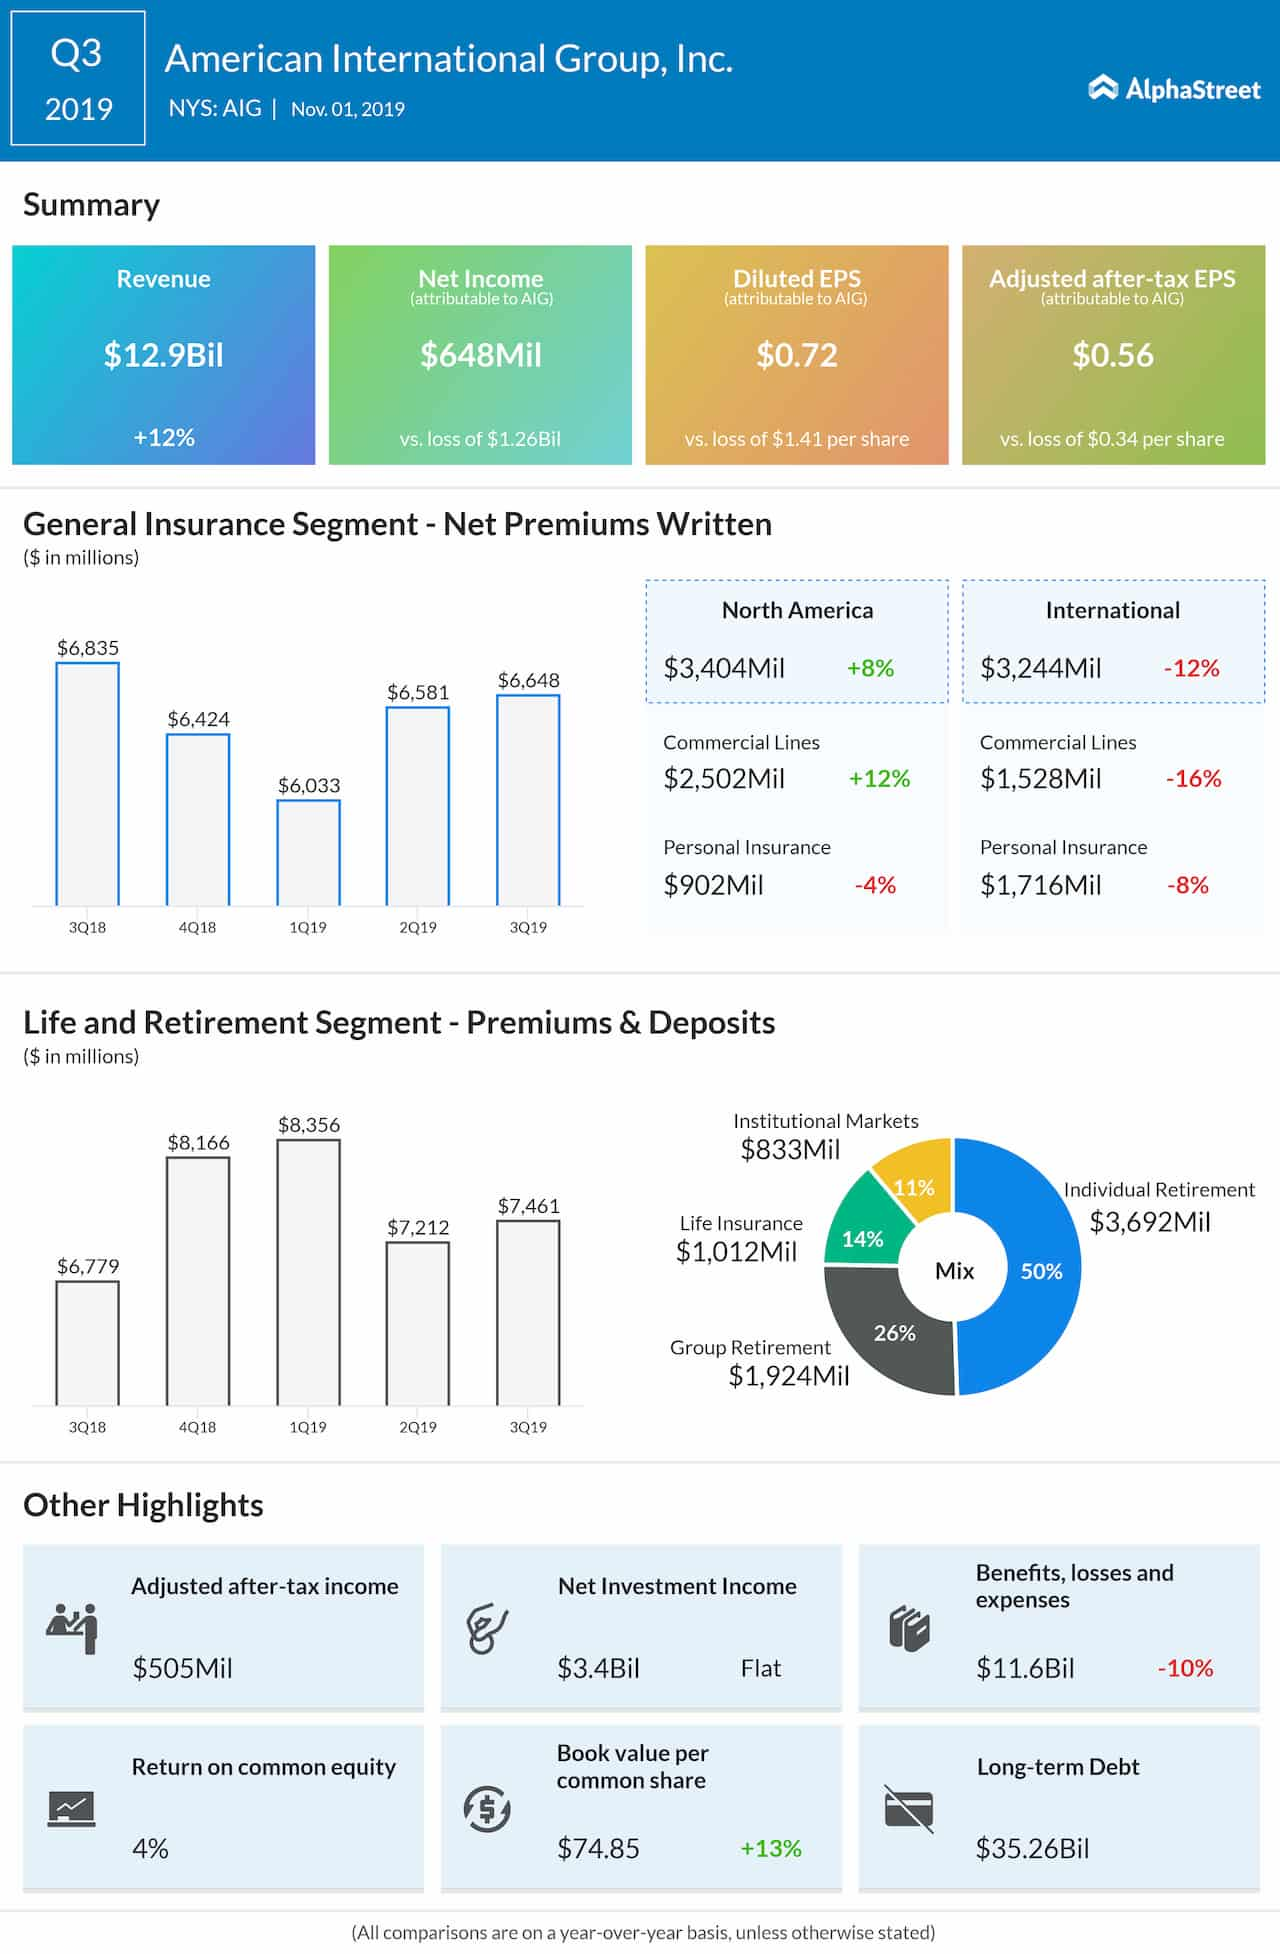 American International Group (NYSE: AIG): Q3 2019 Earnings Snapshot